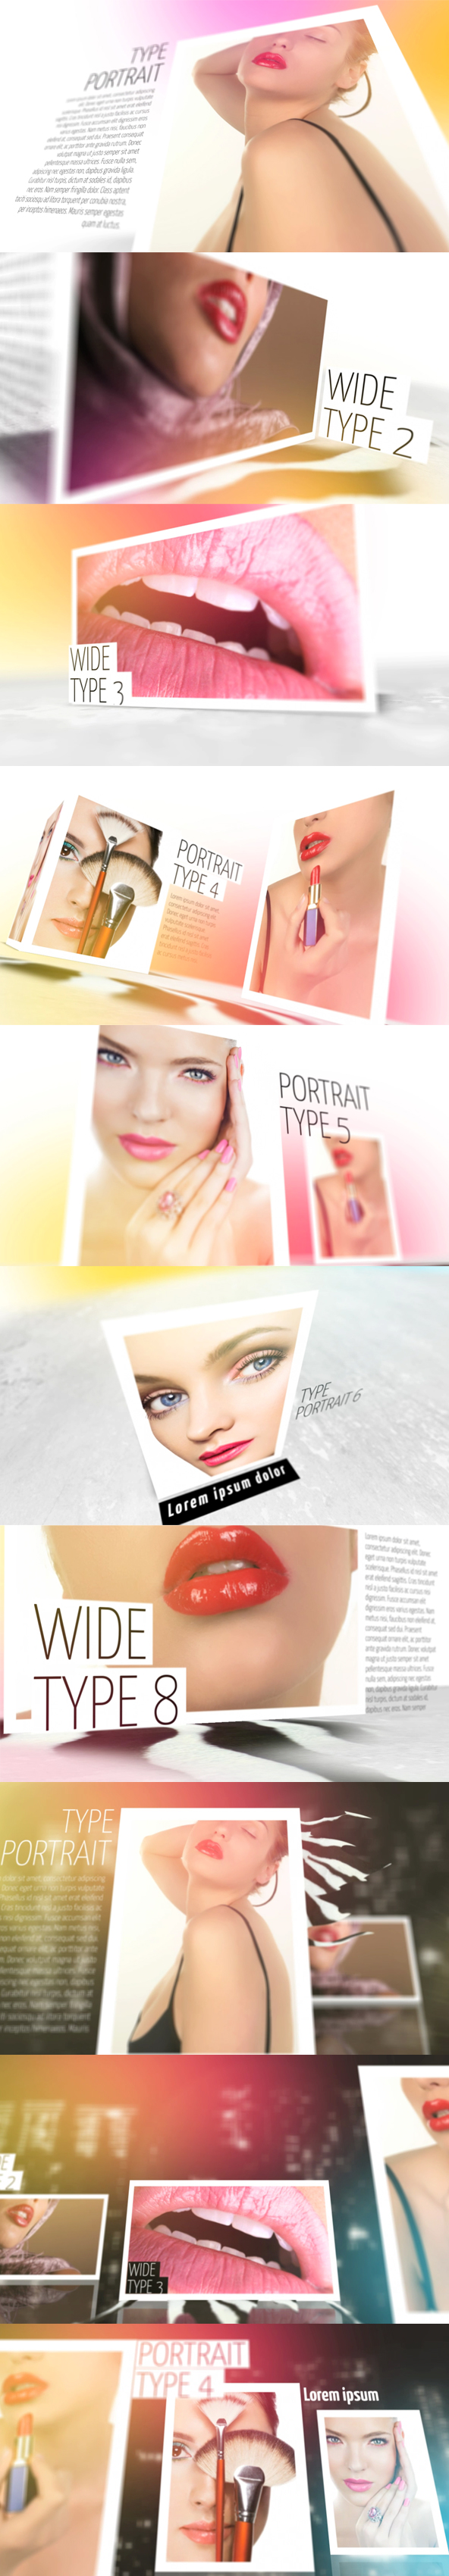 After Effects Template Slideshow